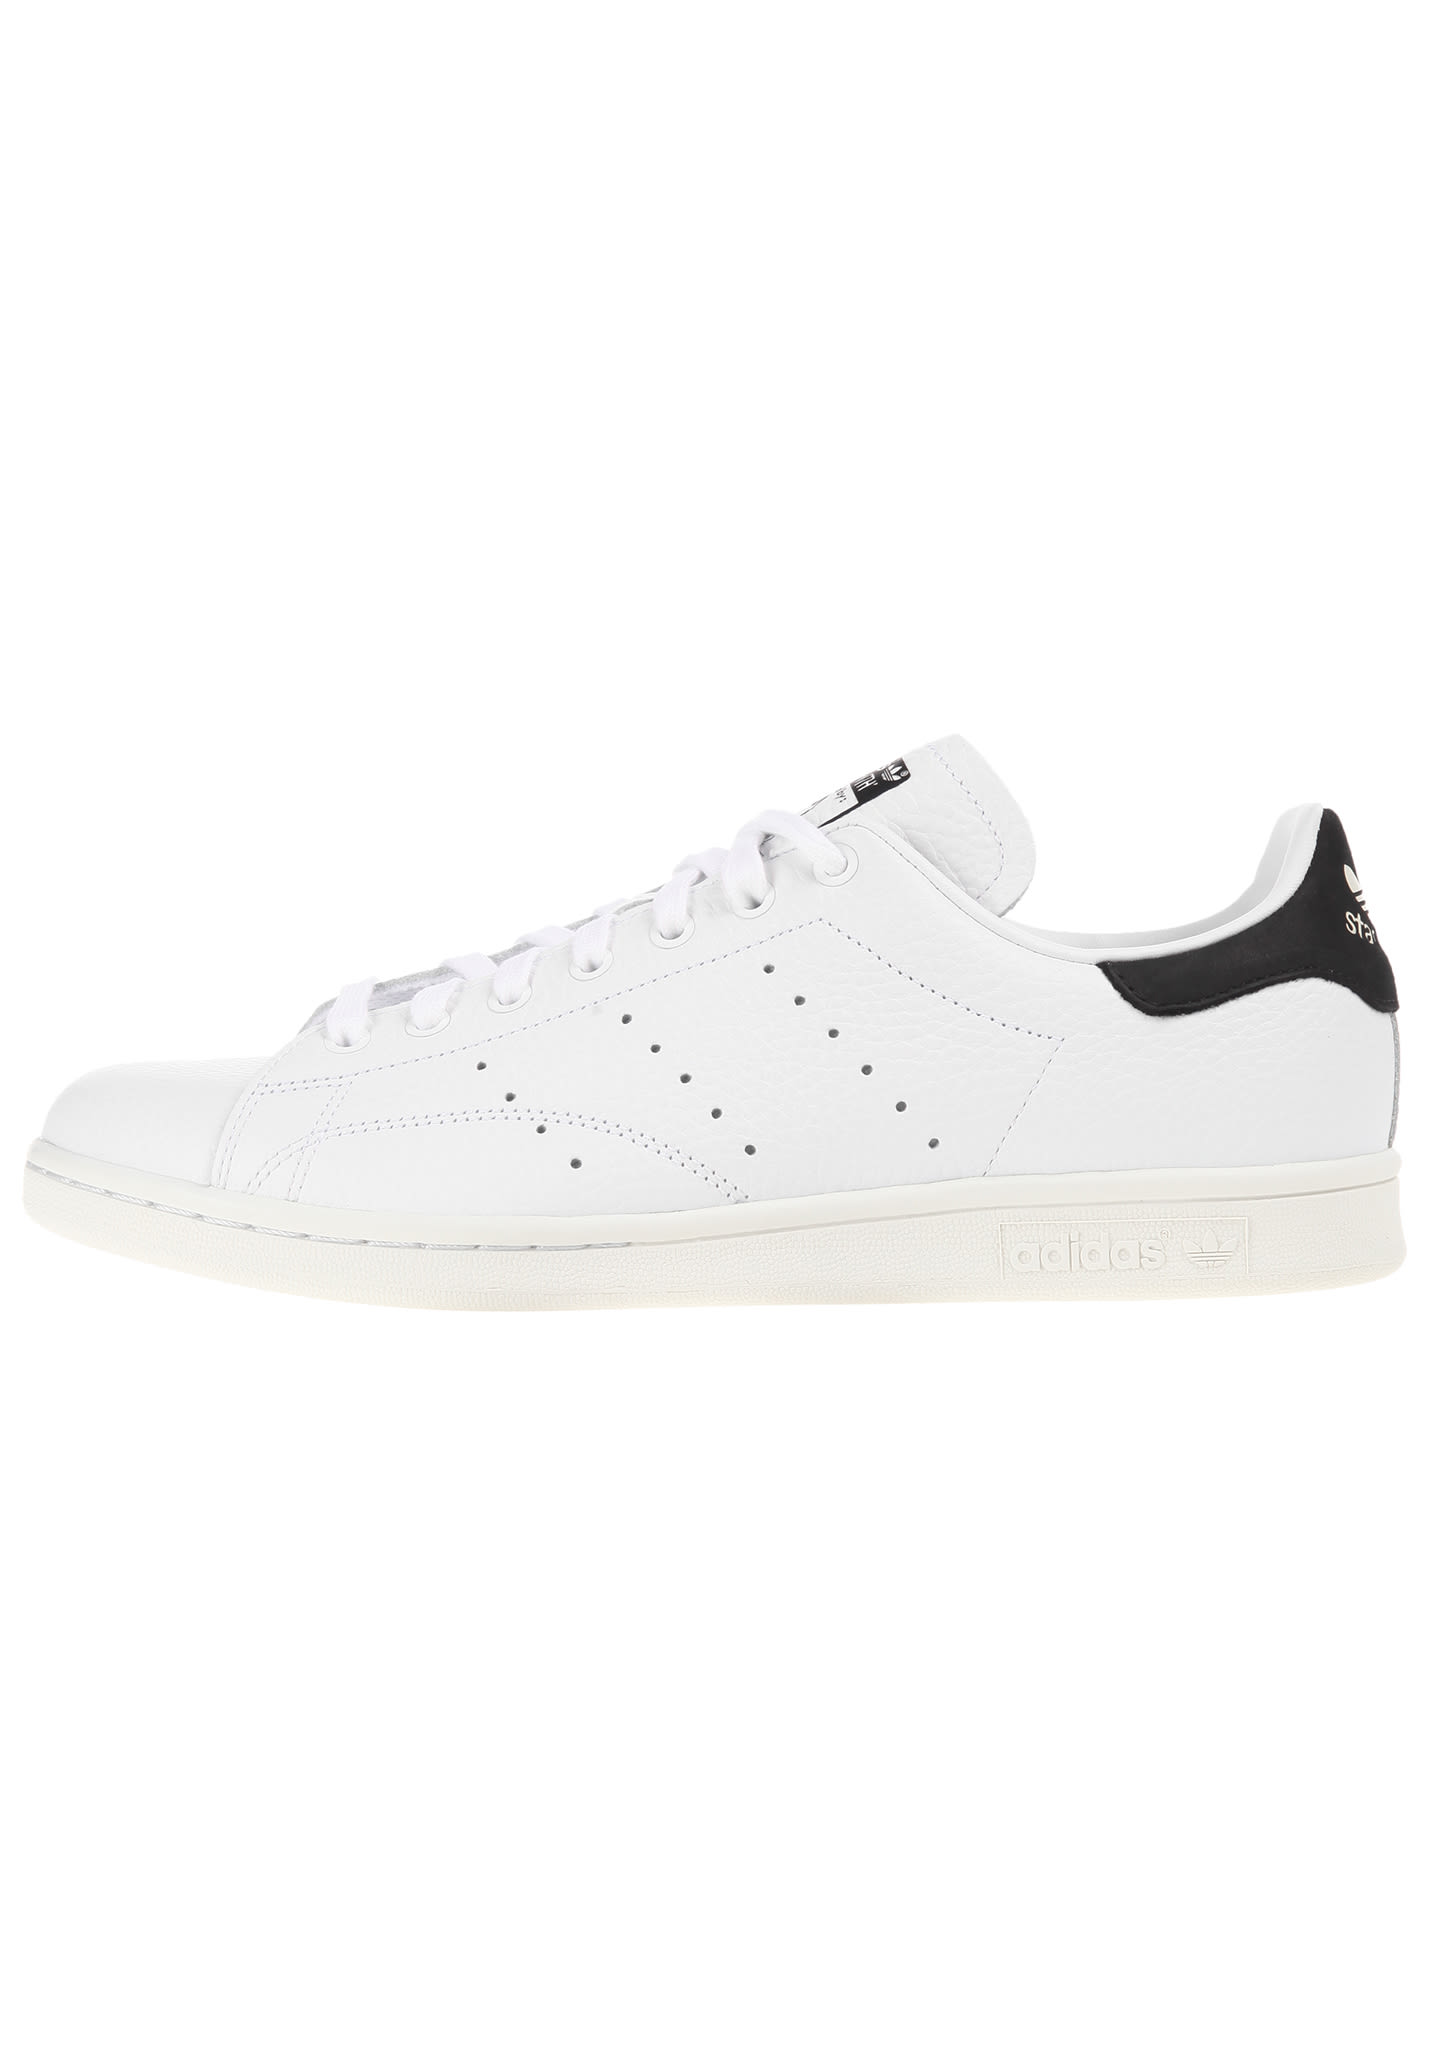 official photos 3d3c5 a73f4 ADIDAS ORIGINALS Stan Smith - Sneakers for Men - White - Planet Sports